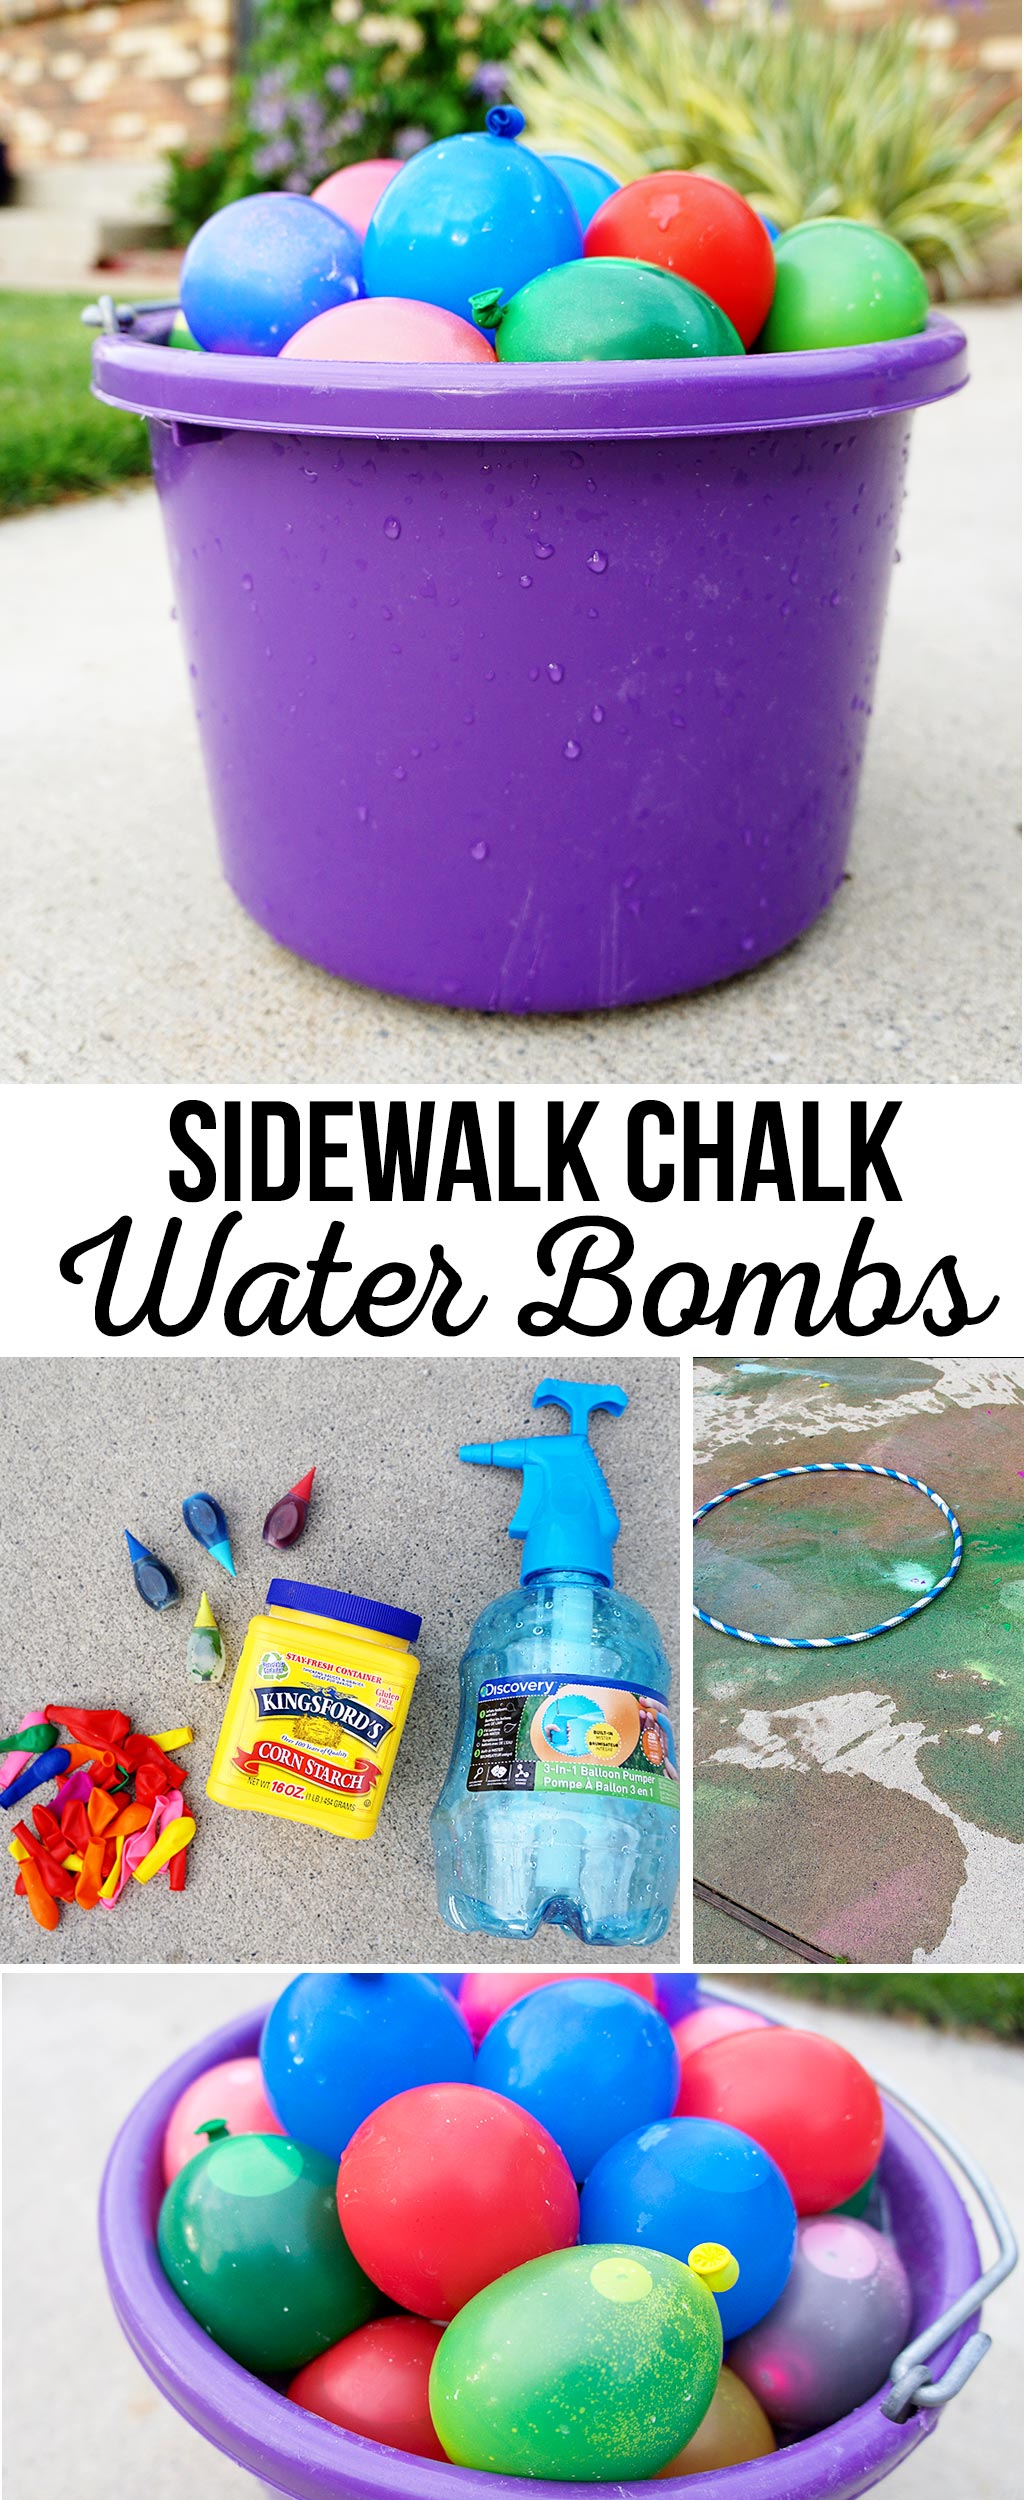 Sidewalk Chalk Water Bombs